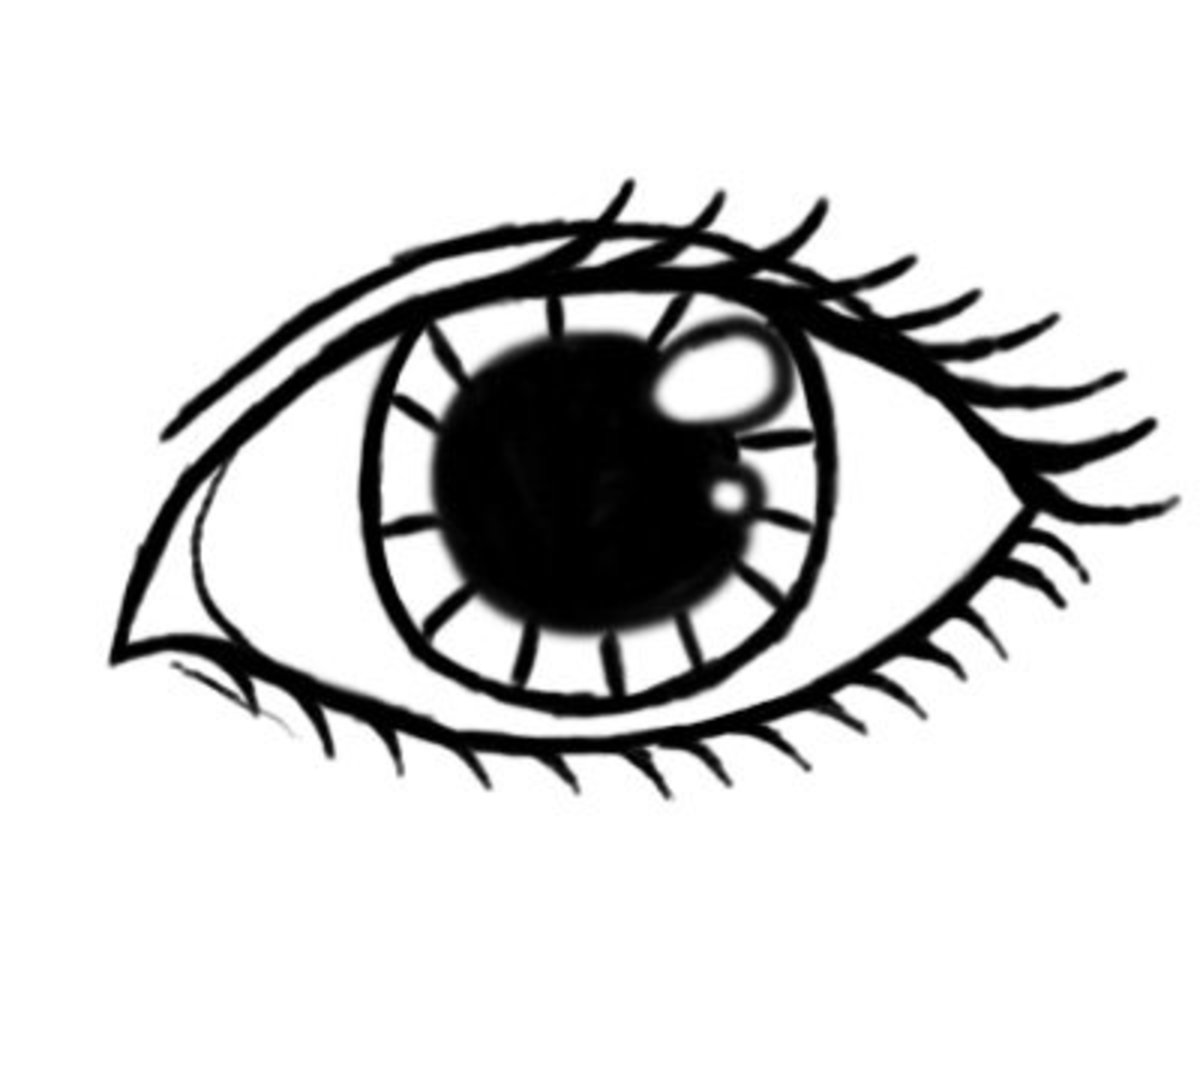 Draw in some eye lashes! :)